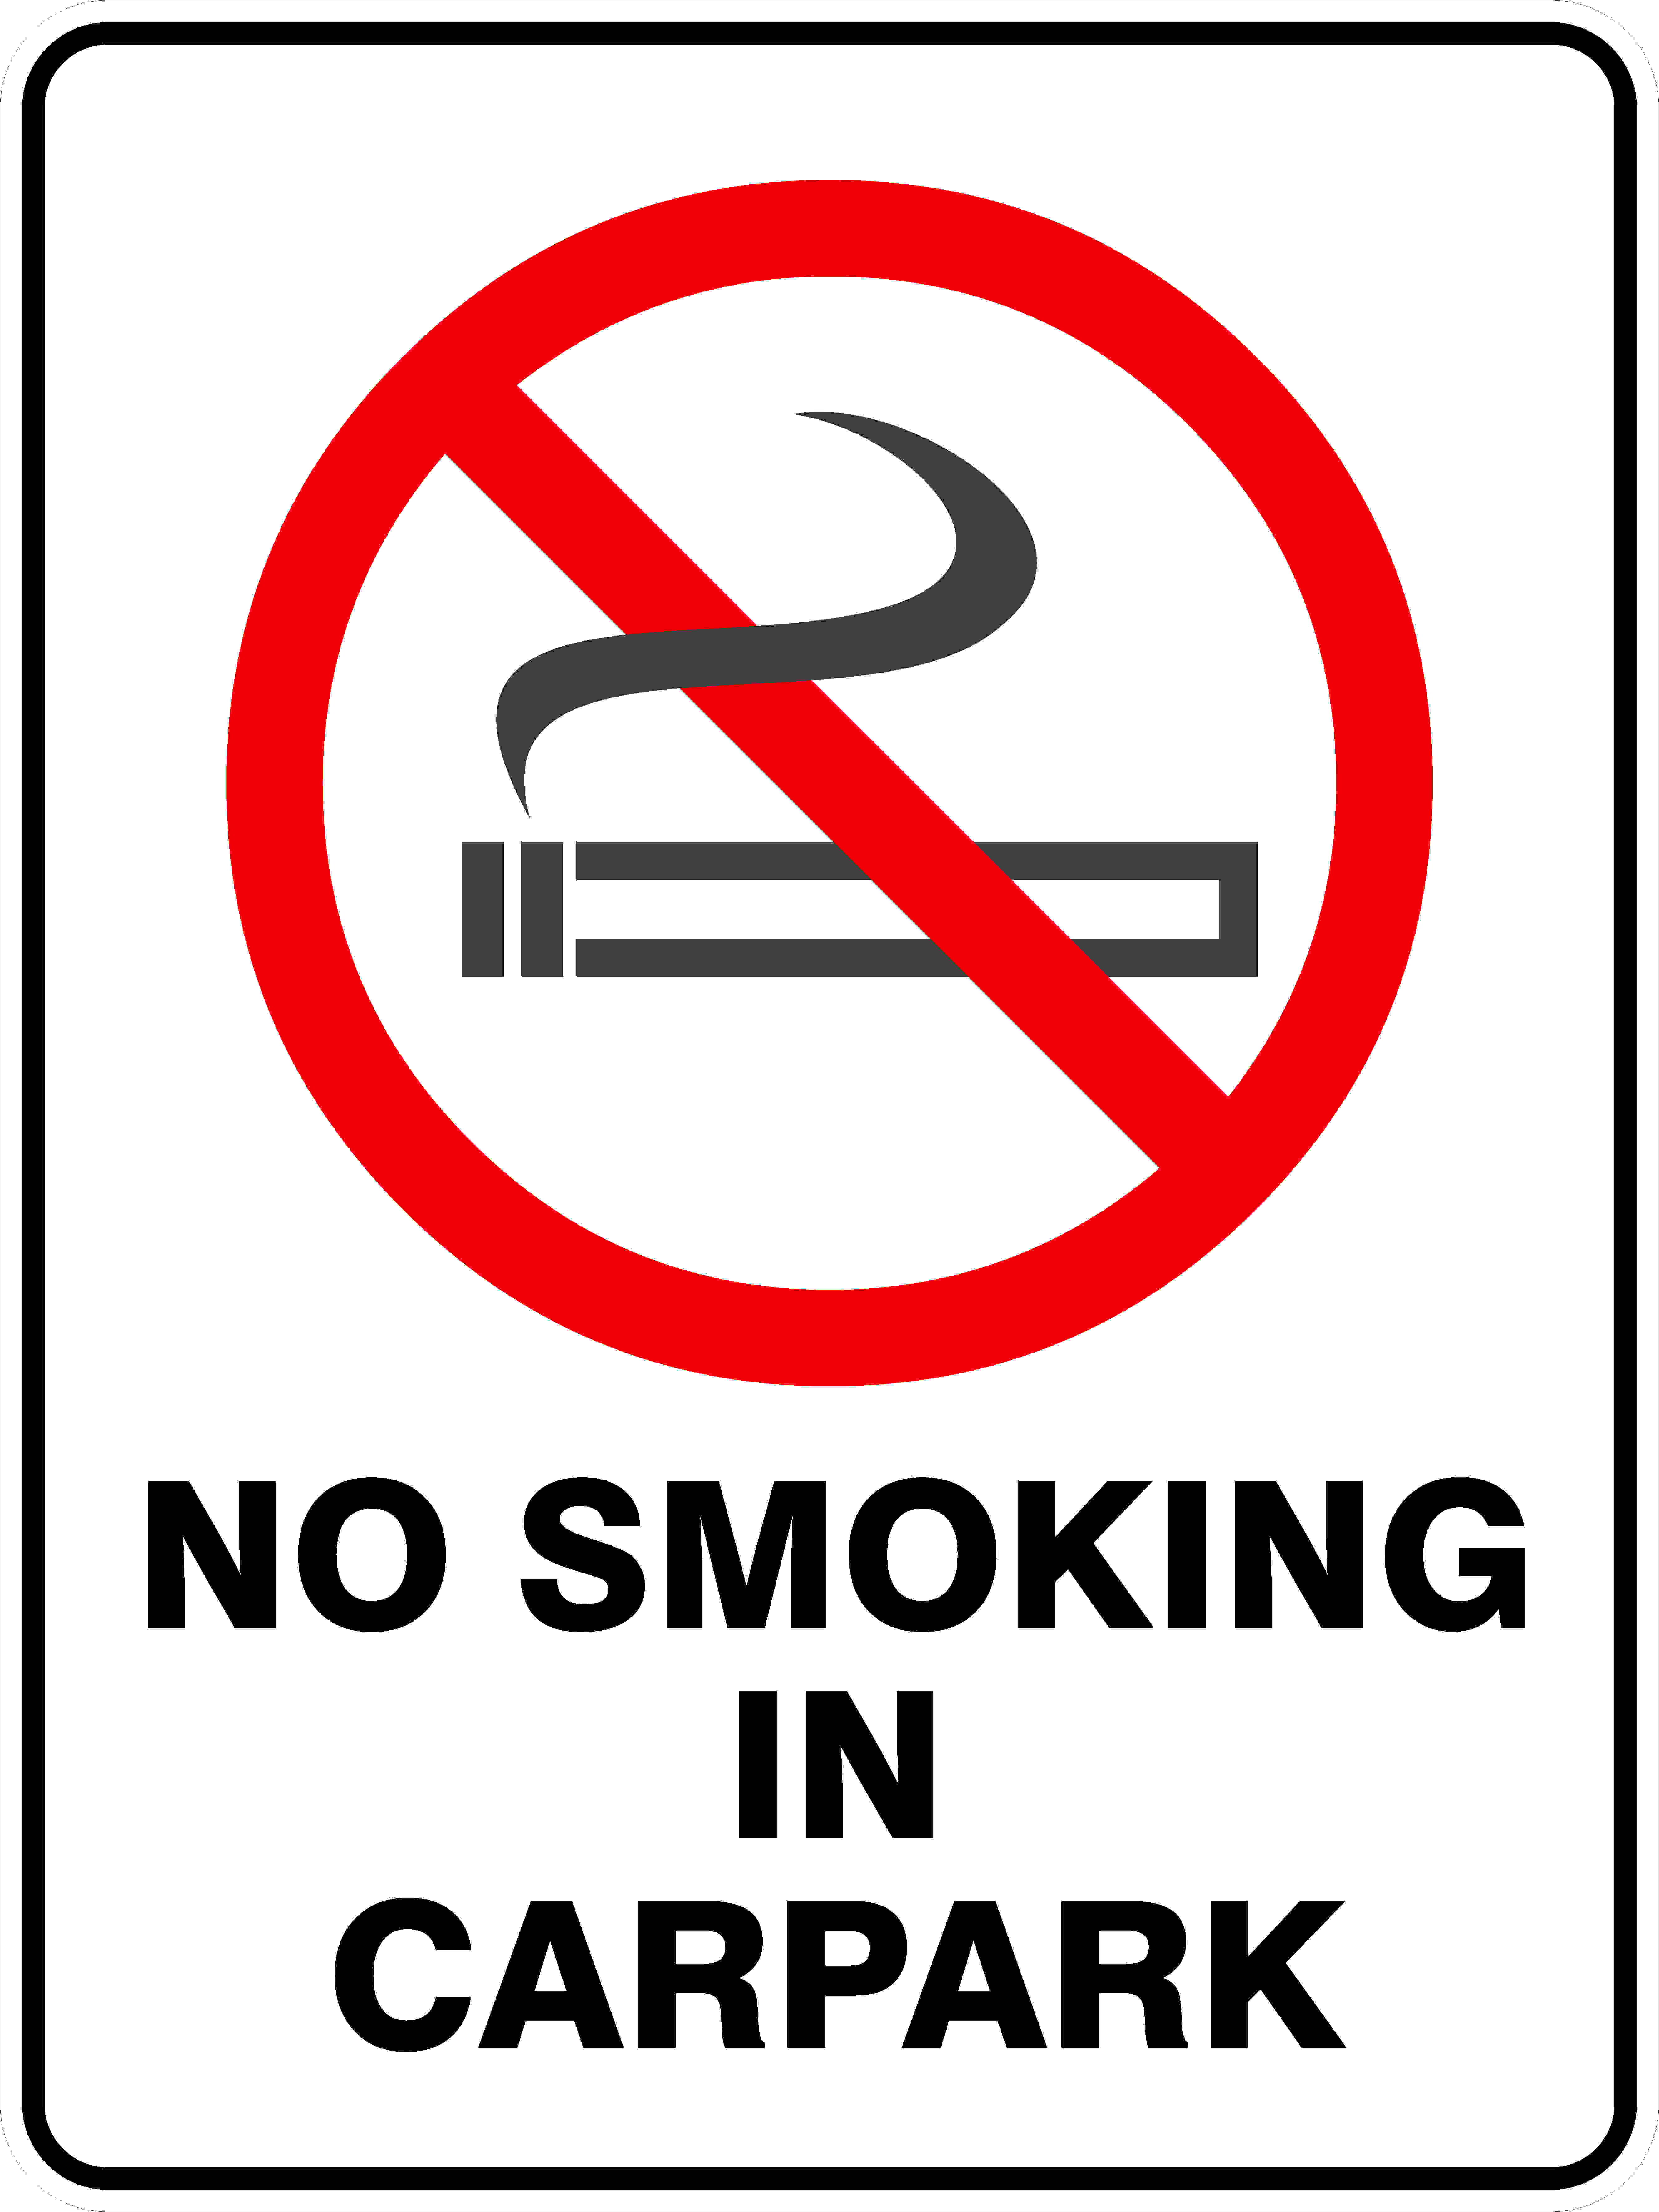 No Smoking In Carpark  Discount Safety Signs New Zealand. Colorado Springs Storage Units. Debt Consolidation Services Ensure V Insure. How To Replace Garage Spring. Bachelor Degree In Interior Design Online. Online Accounting Course College Study Online. Locksmith Lincoln Nebraska Indian Valley Vet. Sprint Total Protection Online Quoting System. Locksmith In Concord Ca Contract Law Attorney